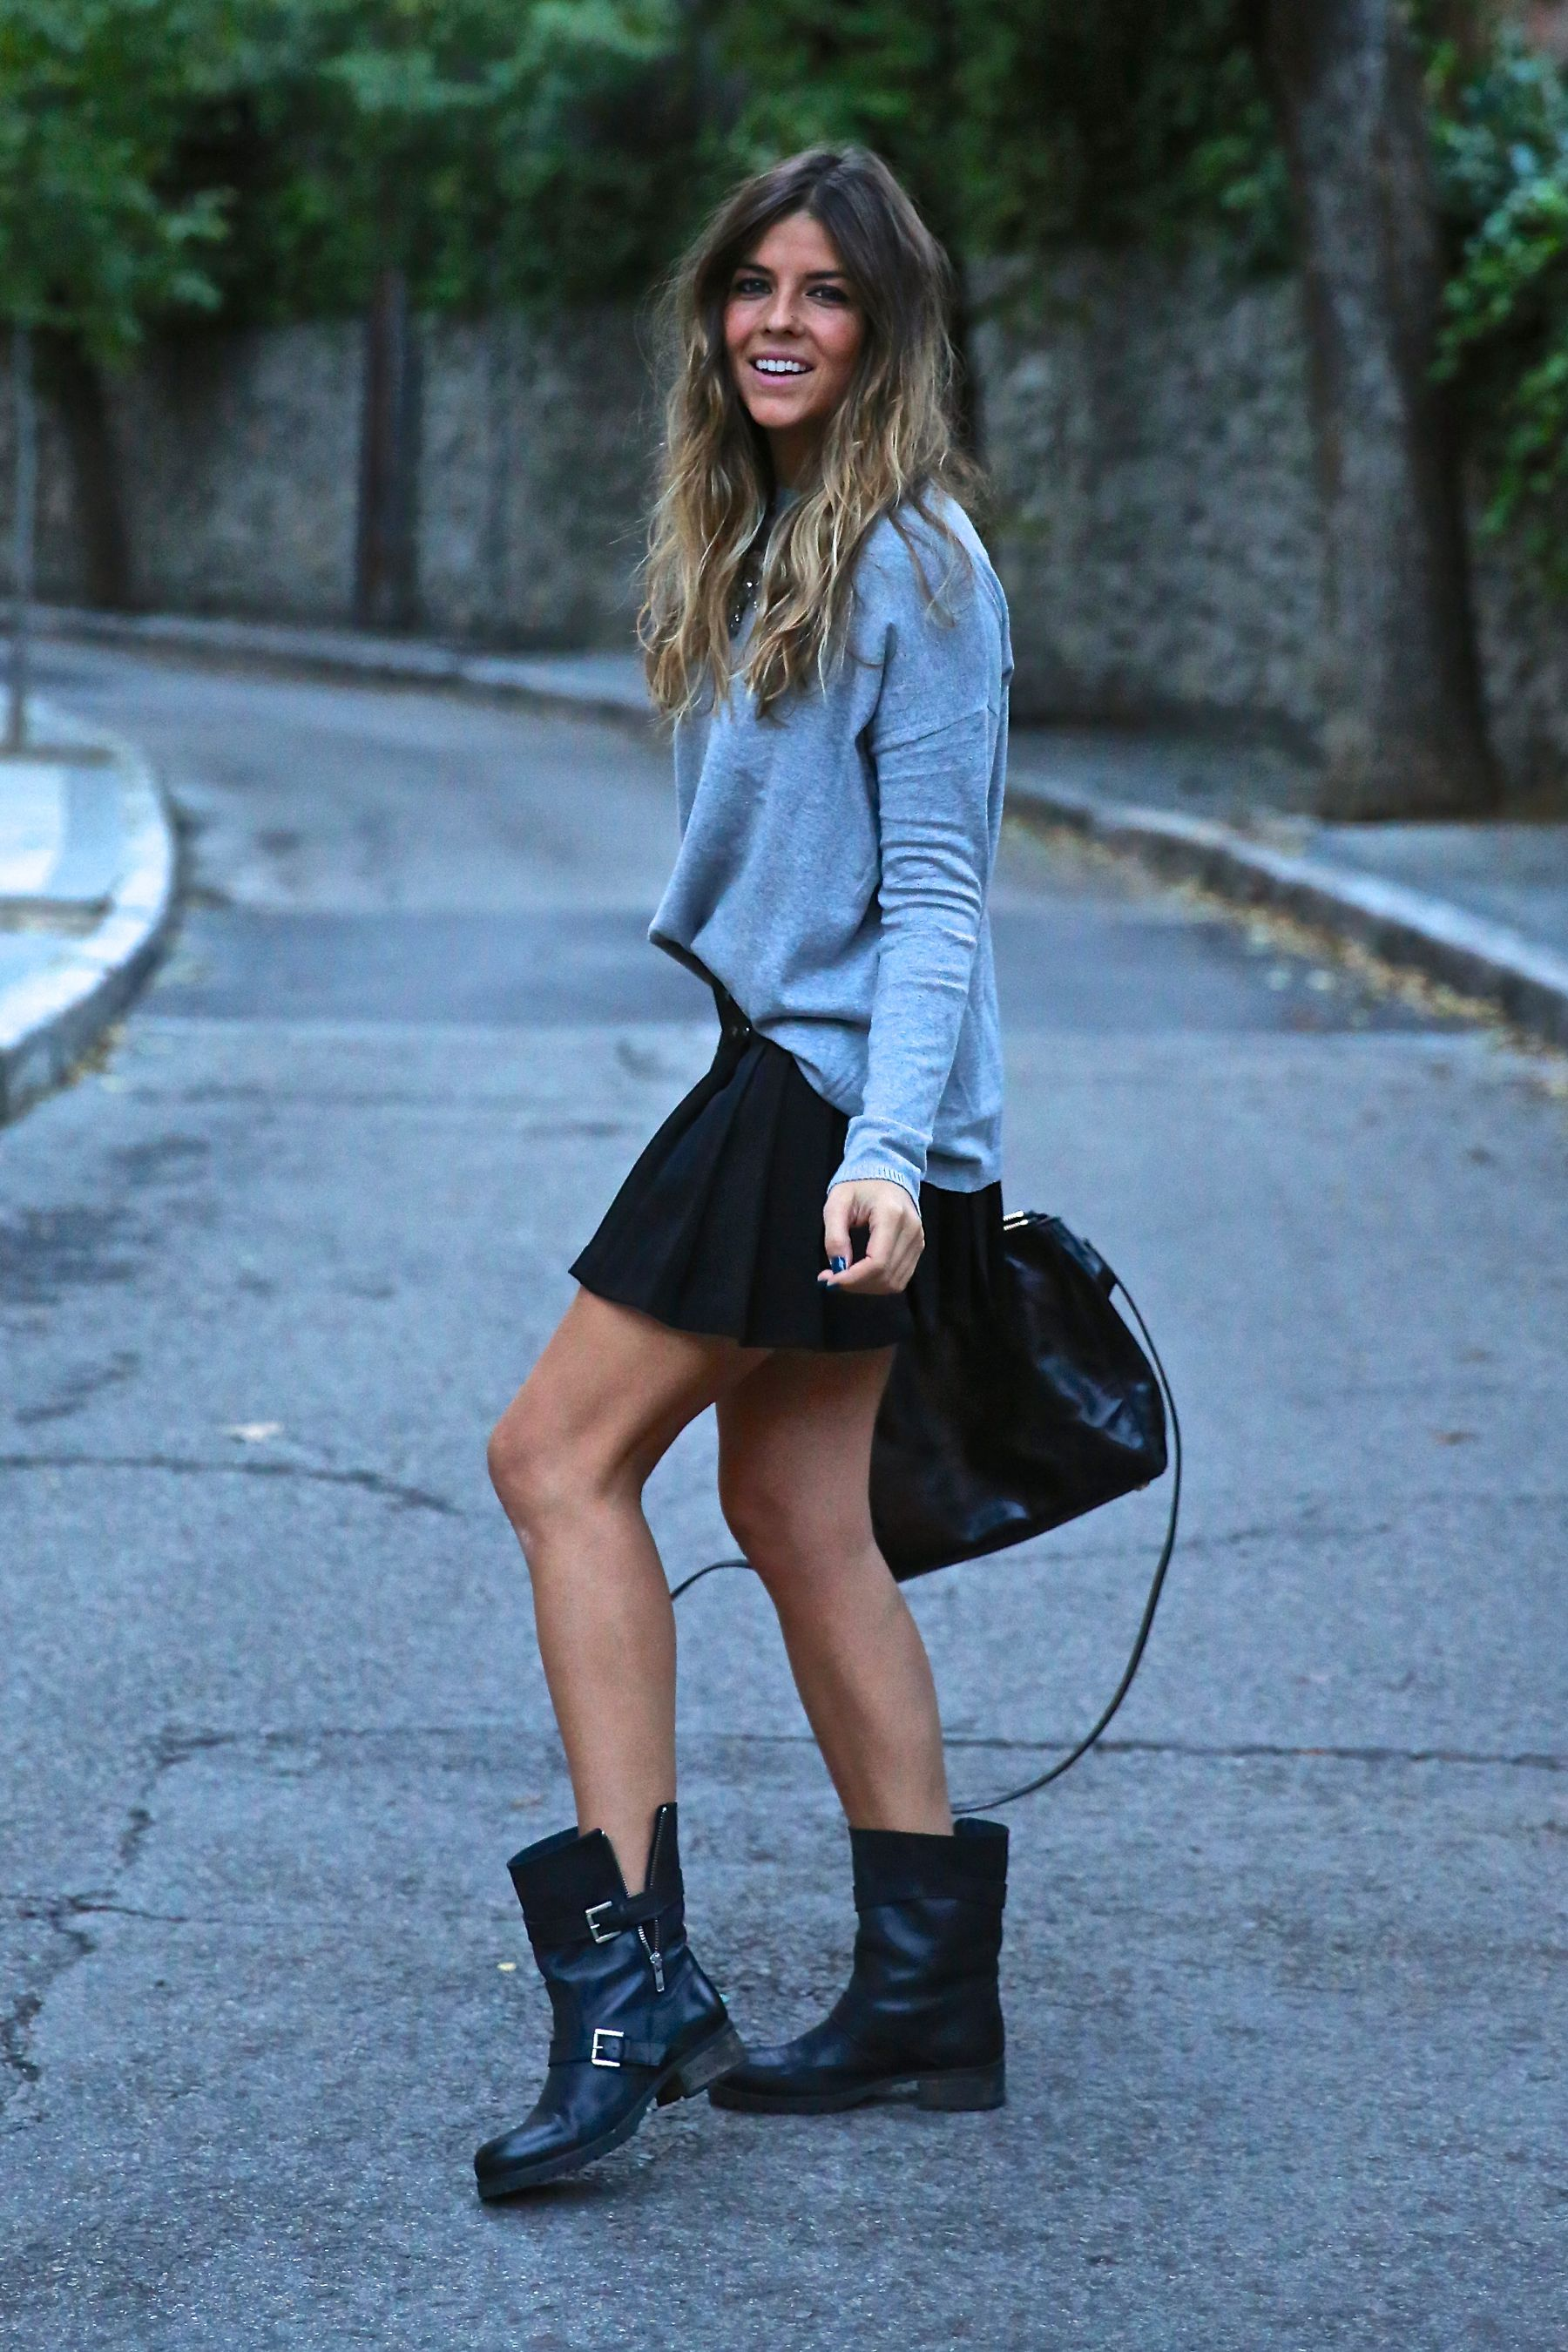 trendy_taste-look-outfit-street_style-ootd-blog-blogger-fashion_spain-moda_españa-fall_winter-otoño-rocky-botas_moteras-jersey_punto-sweater-9